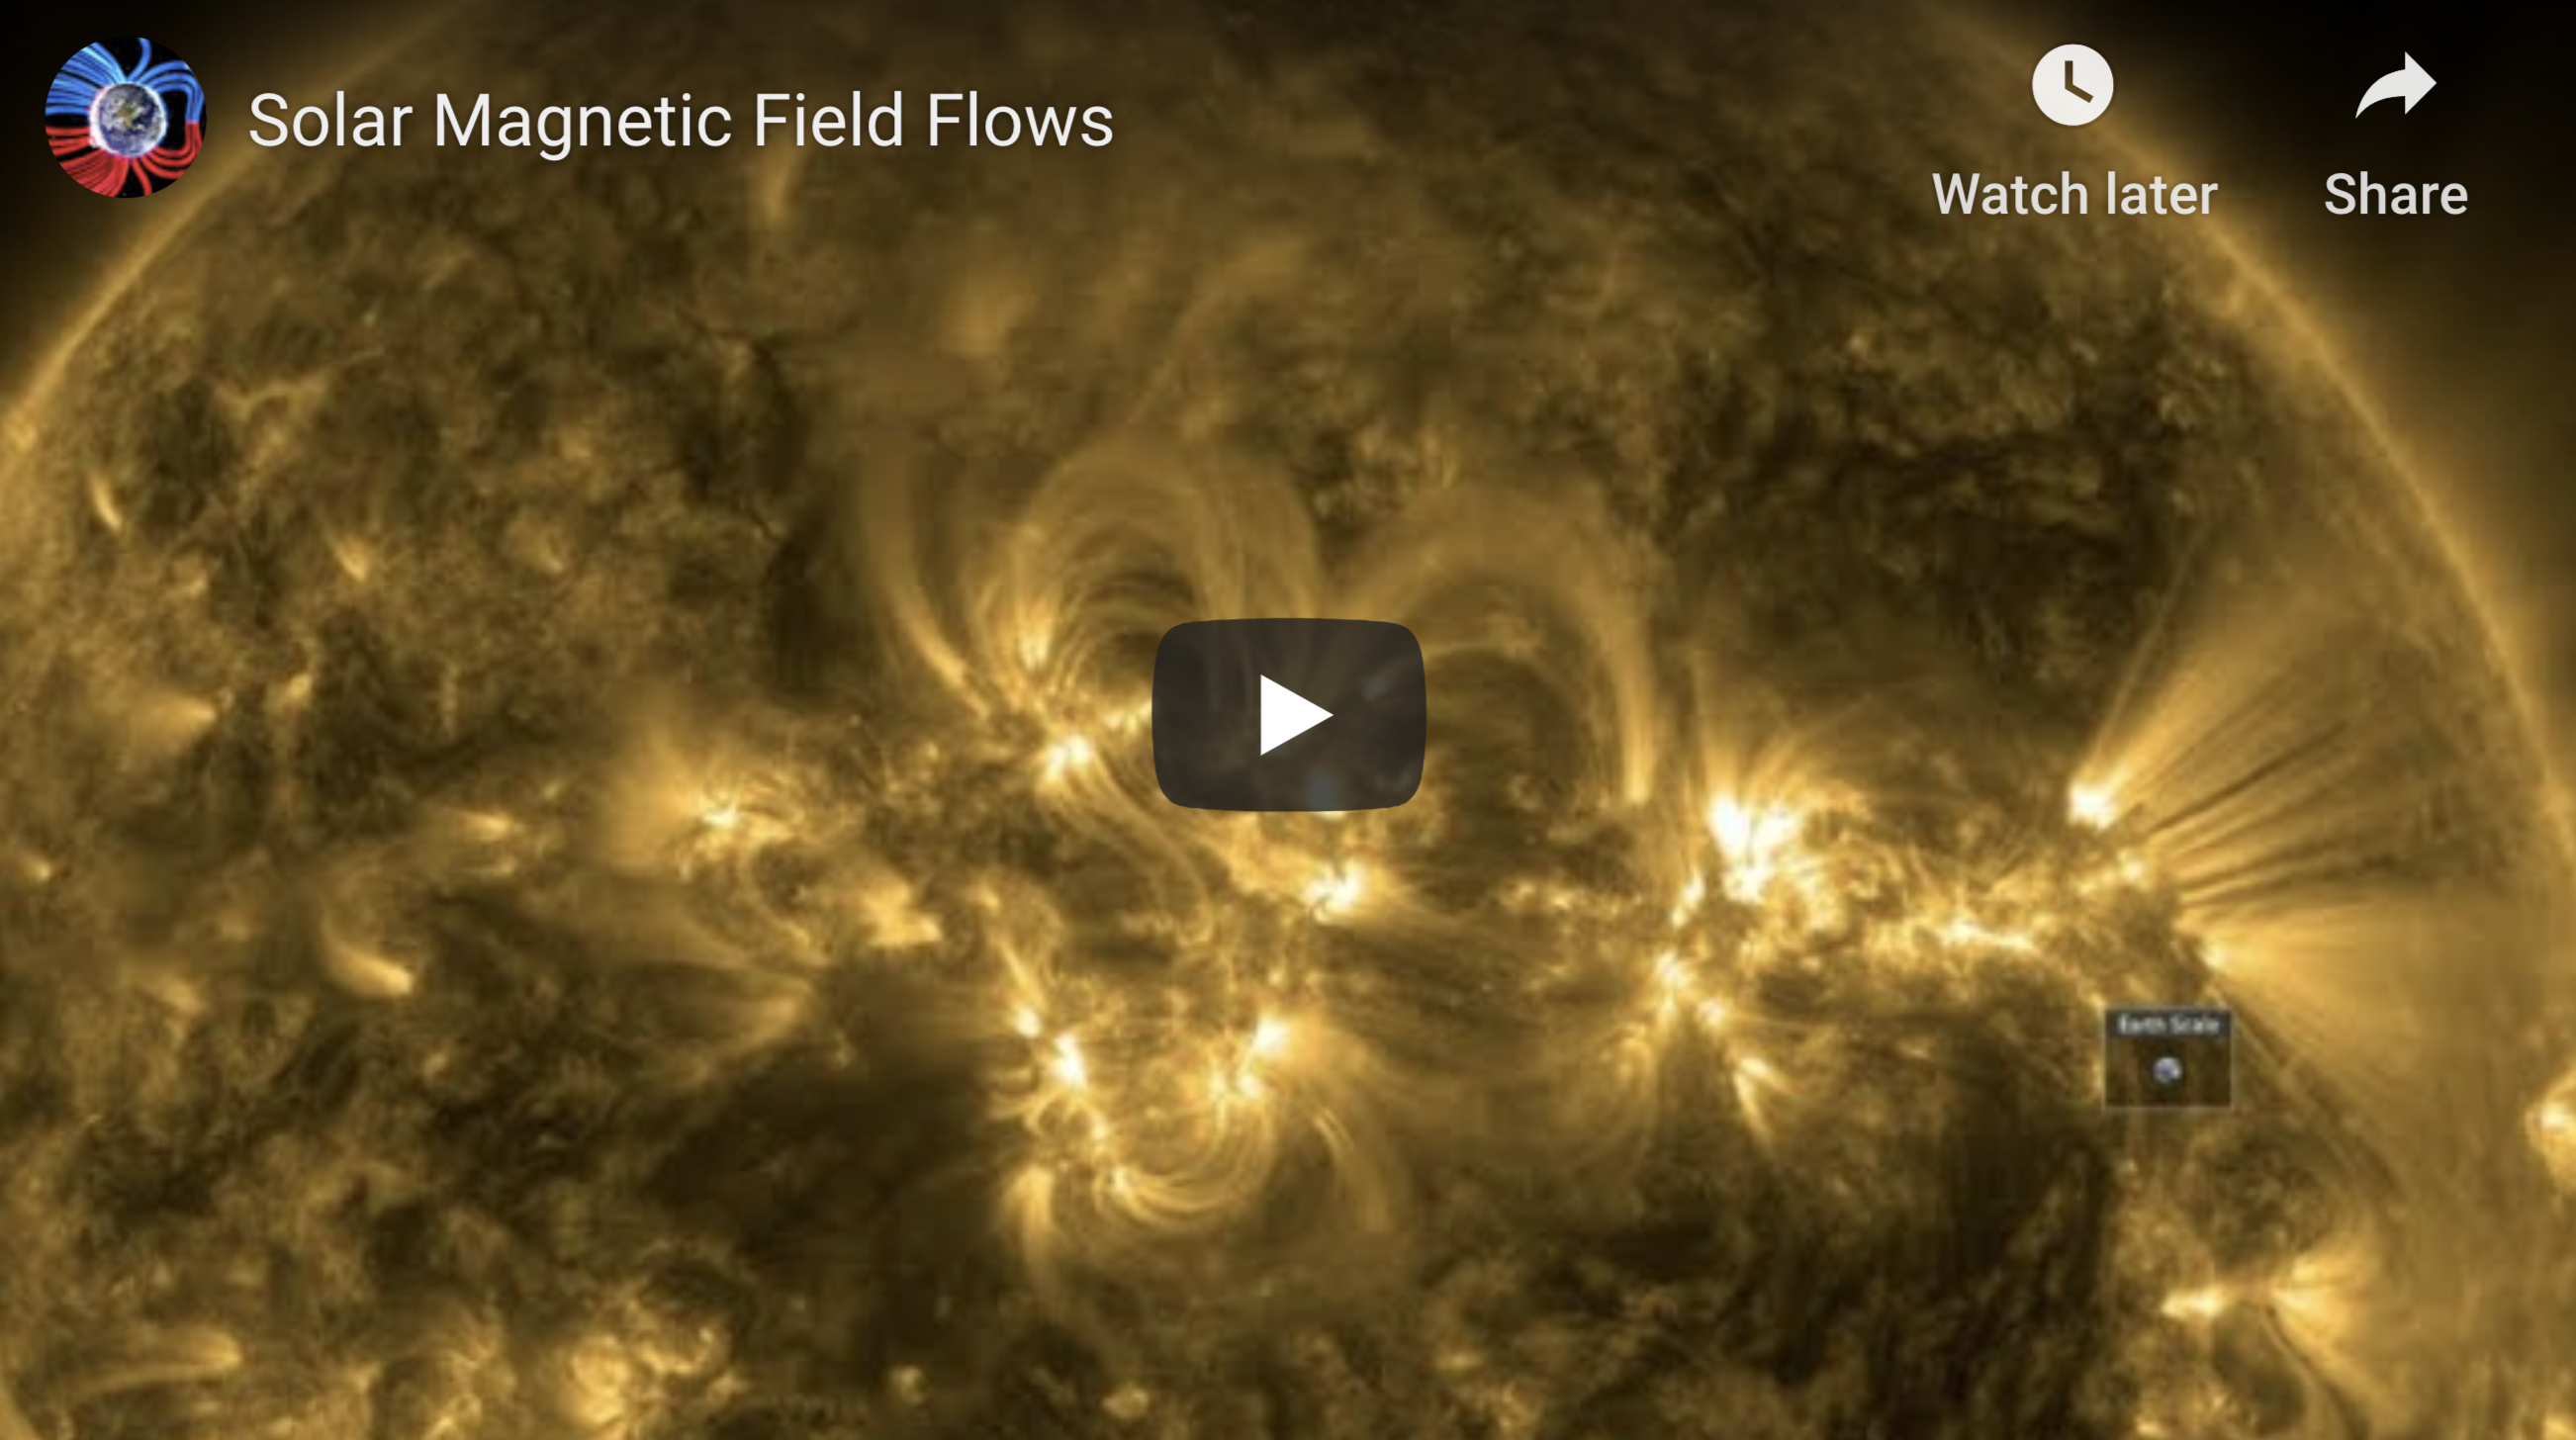 Solar Magnetic Field Flows 4 23 2020